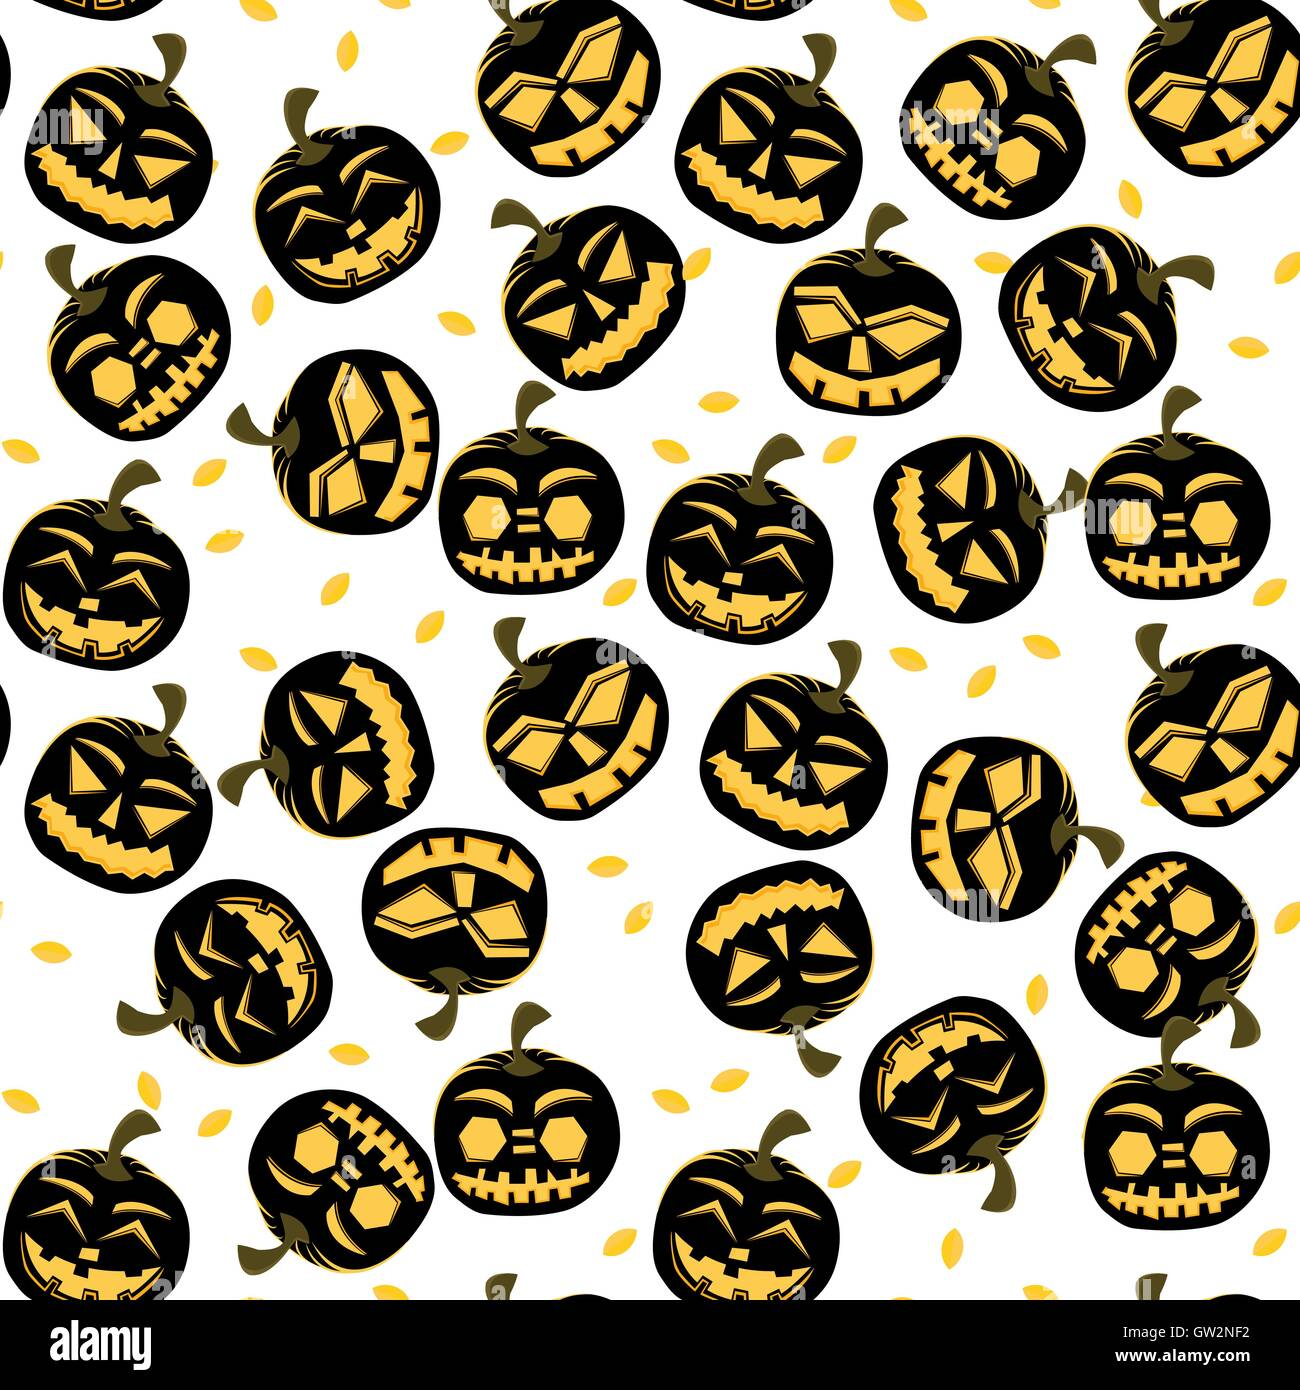 Seamless Pattern with Halloween Pumpkins. Vector Illustration. - Stock Vector